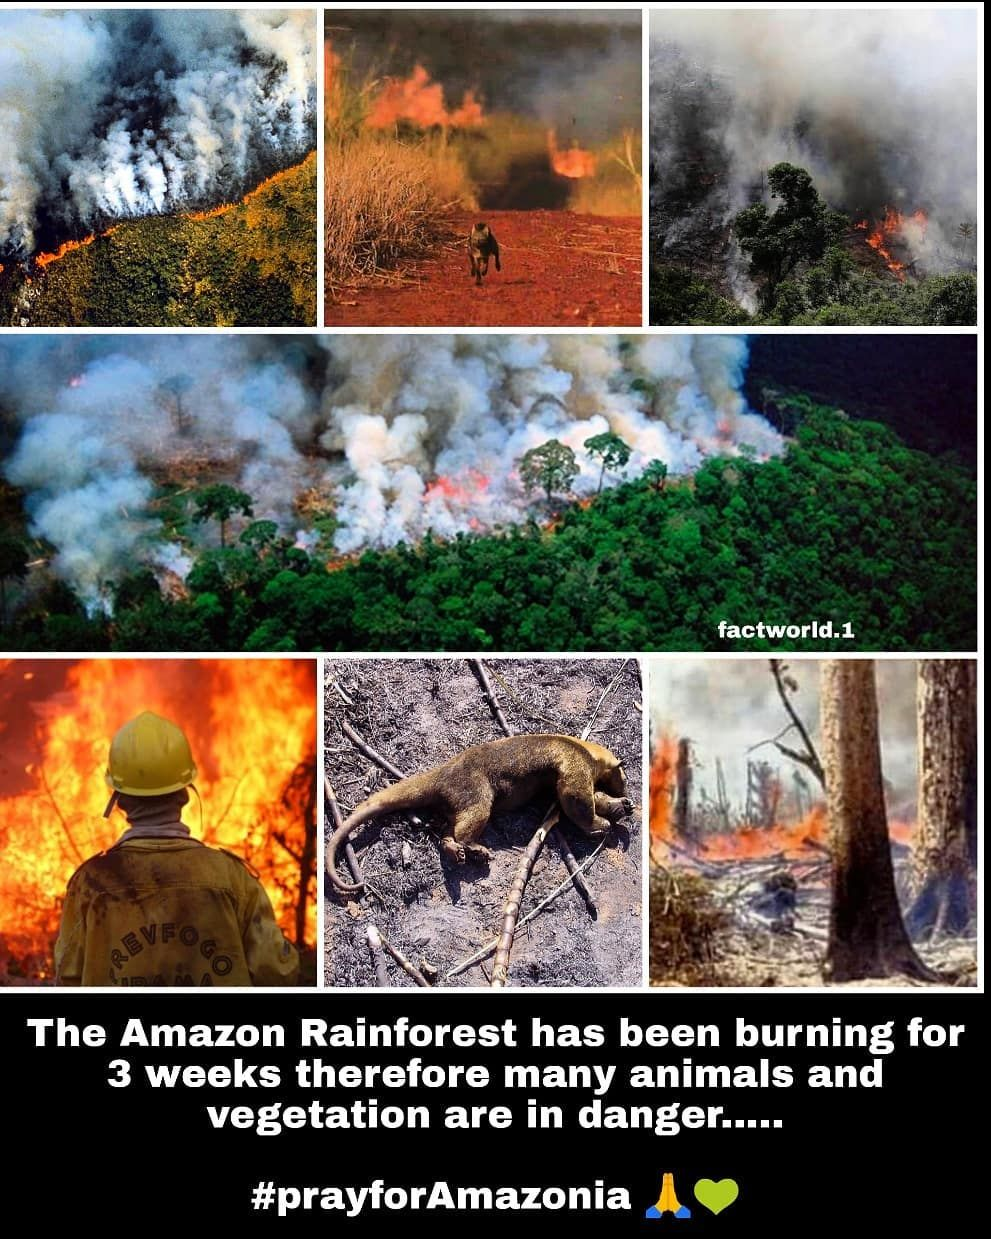 Forest Fires In The Amazon Are Generating Smoke That Can Be Seen